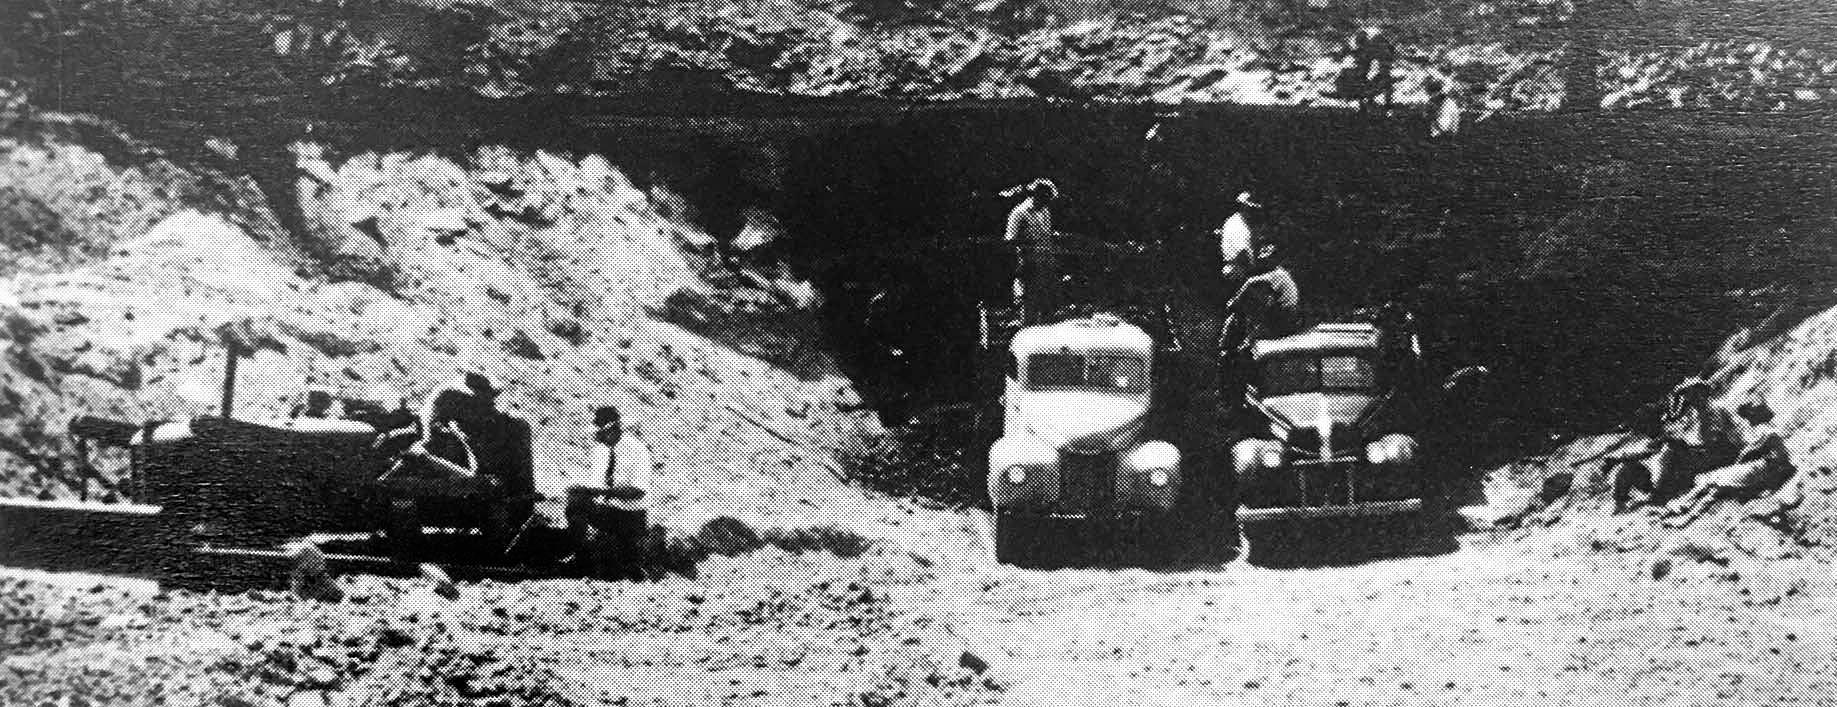 Council work crews at the coal face in 1949.